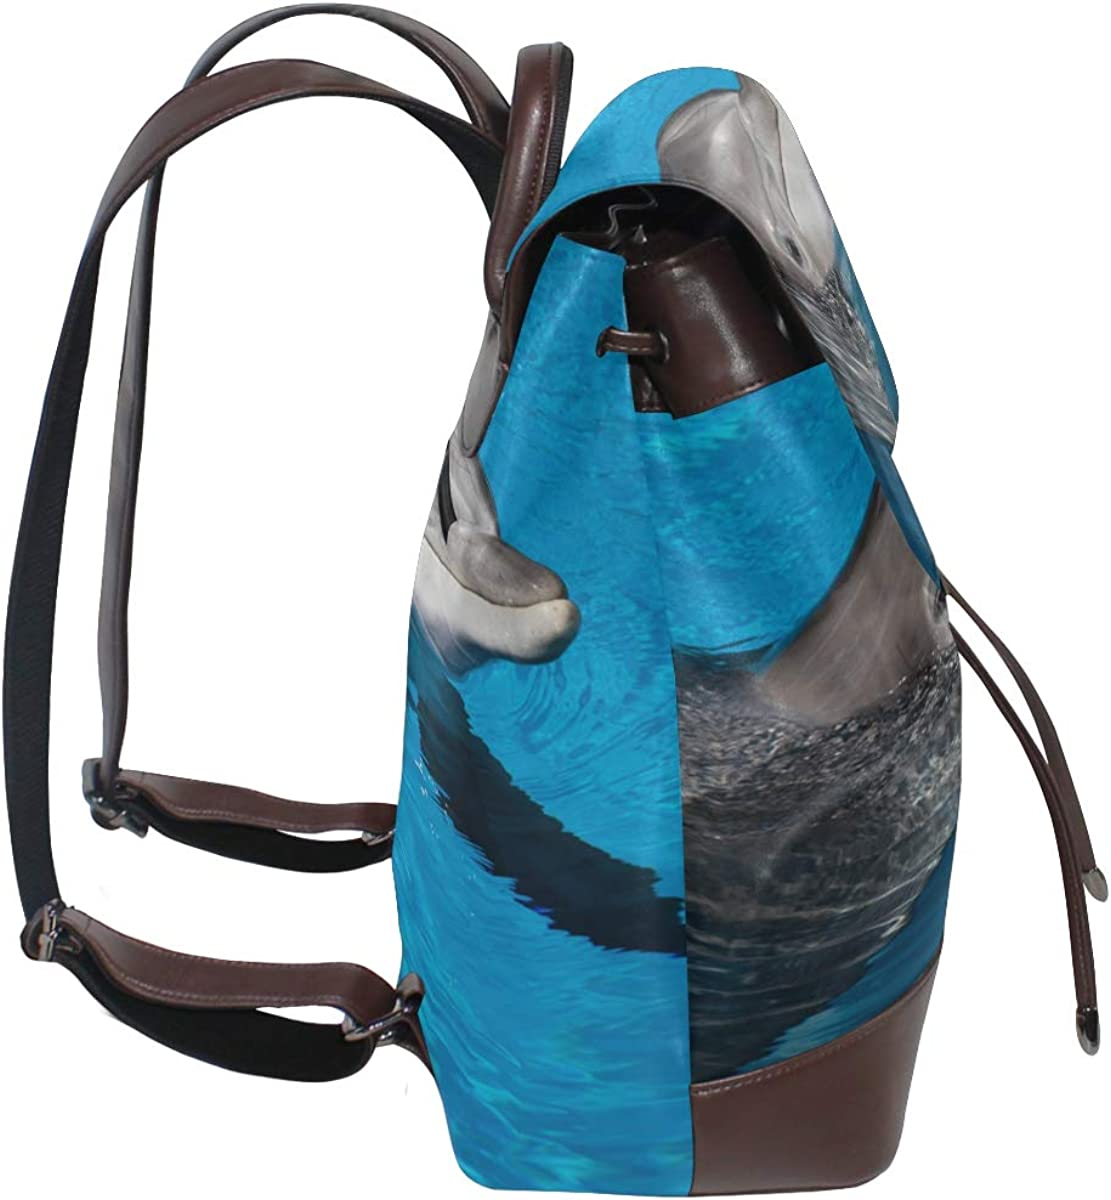 Dolphin Underwater On Reef Look Leather Backpack For Teens Pu Leather Backpack Purse Drawstring Waterproof Daily Shoulder Bag Casual Leather Backpack For Women